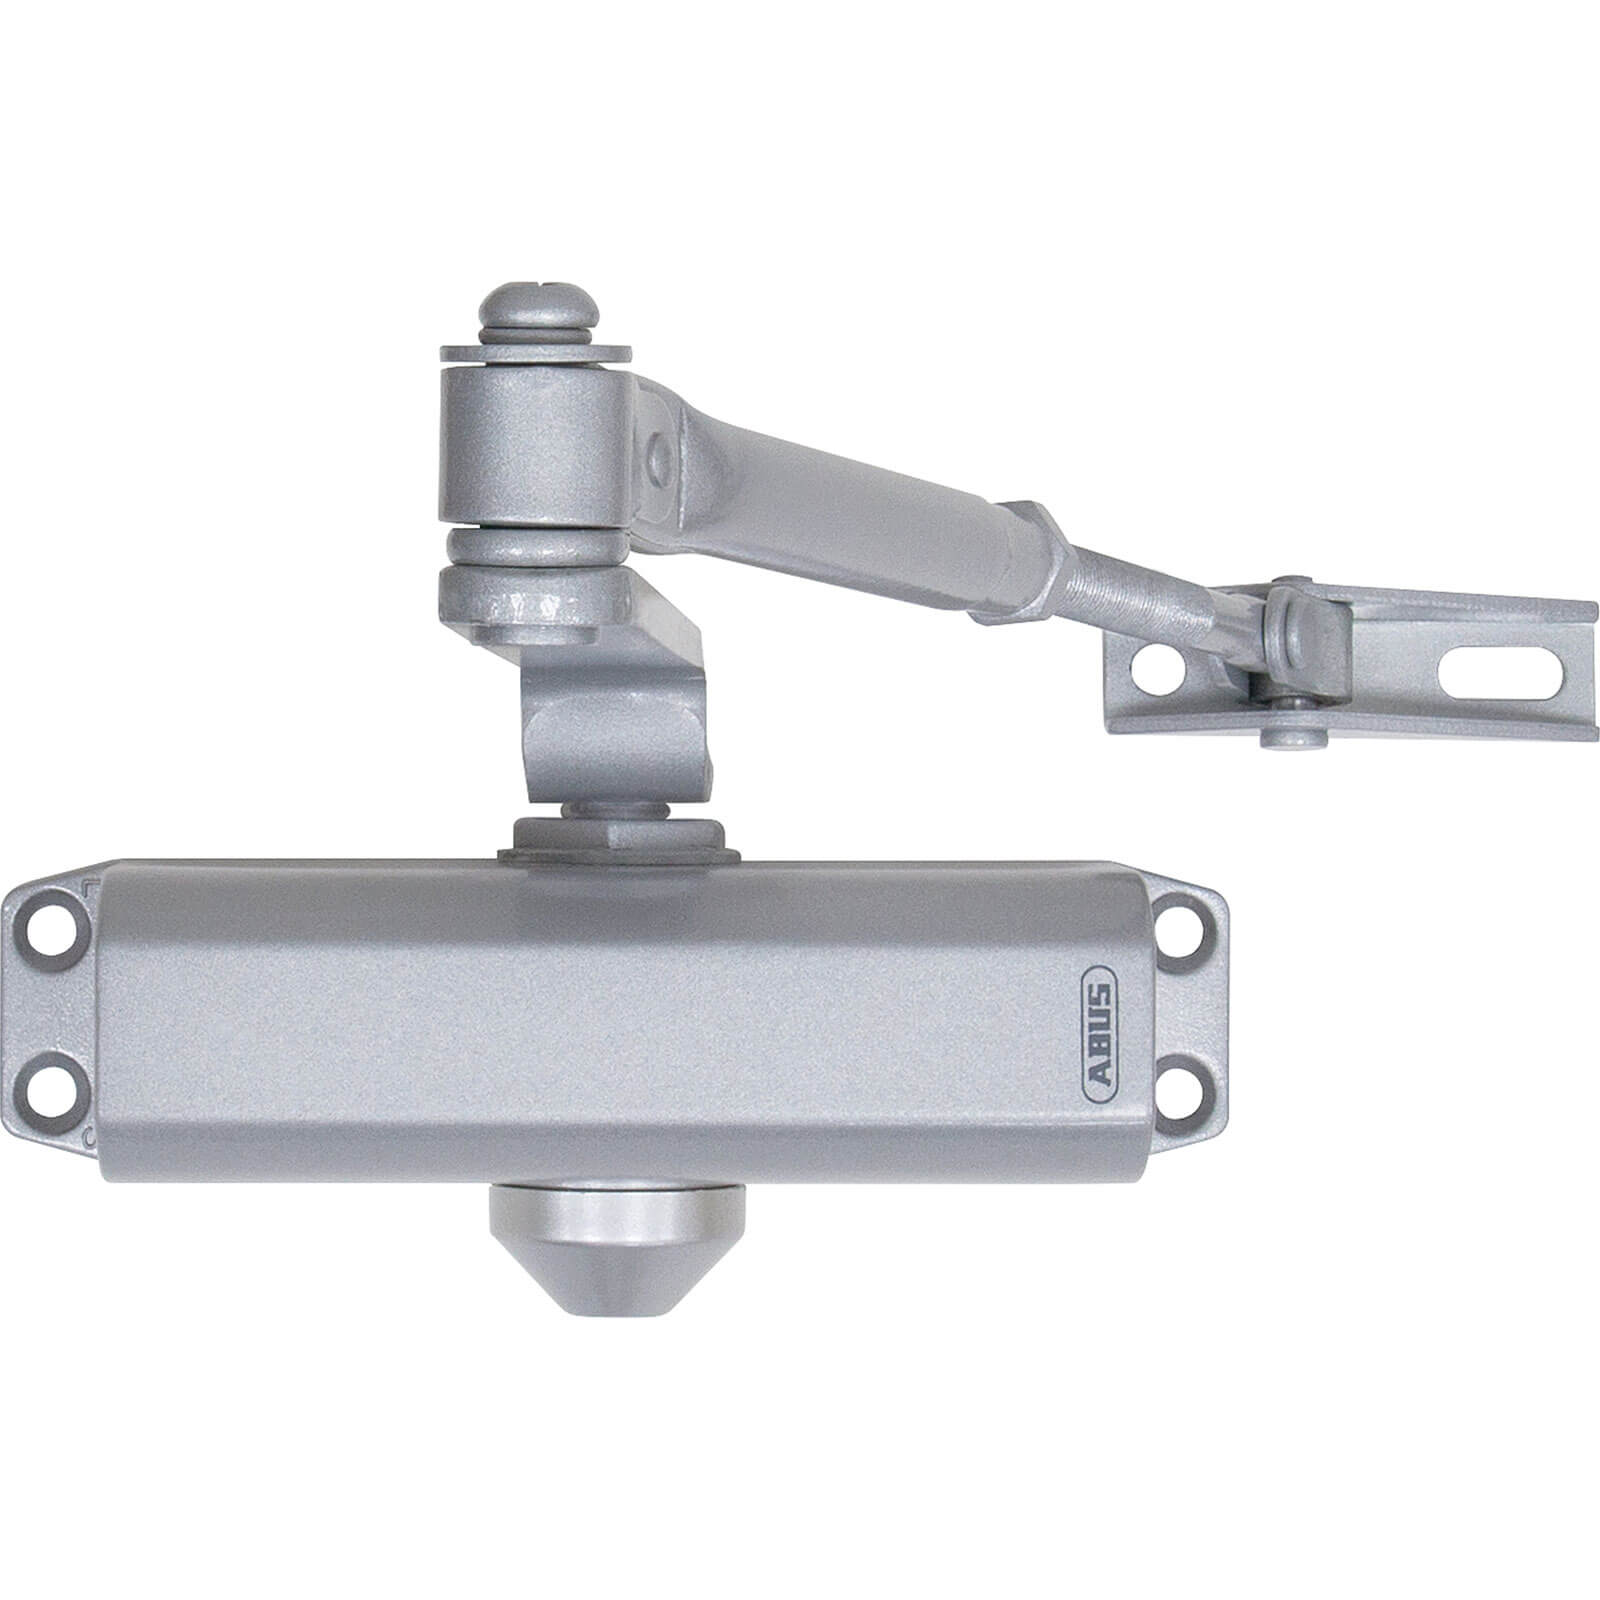 Image of Abus AC4223 S Door Closer 65kg